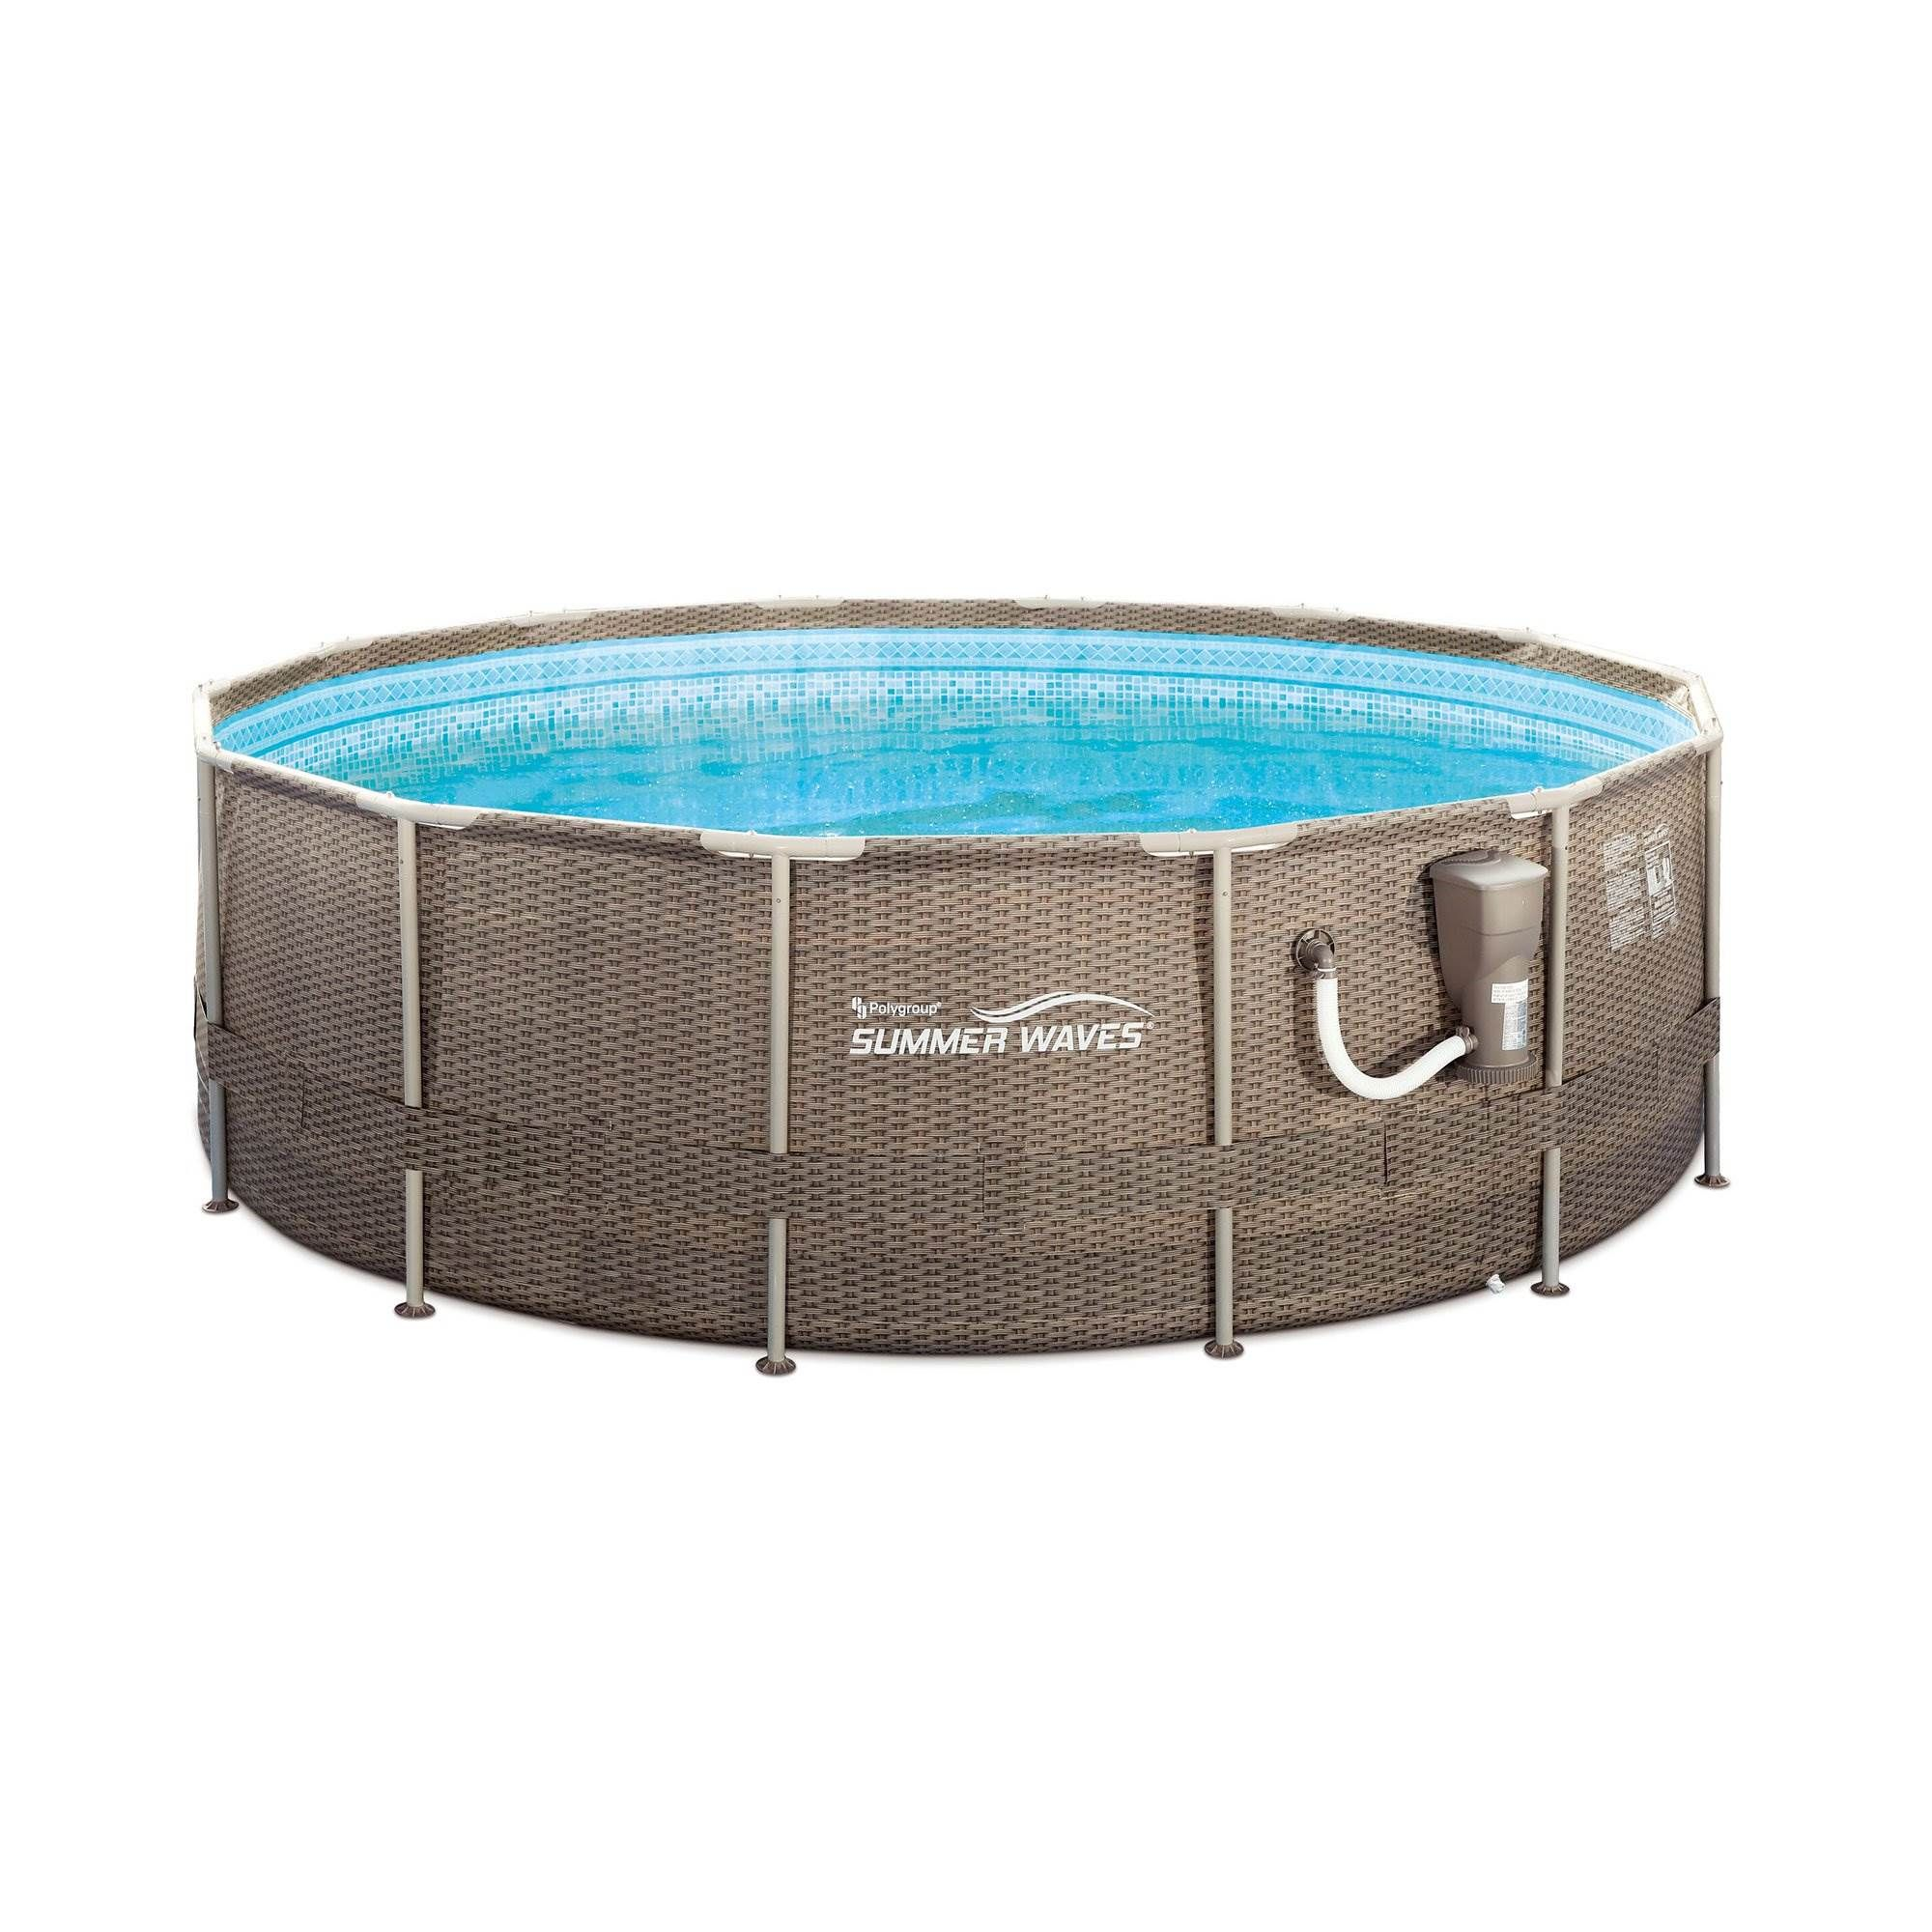 Summer Waves 14ft X 48in Frame Outdoor Swimming Pool With Ladder And Pump Walmart Com In 2020 Summer Waves Swimming Pools Outdoor Swimming Pool